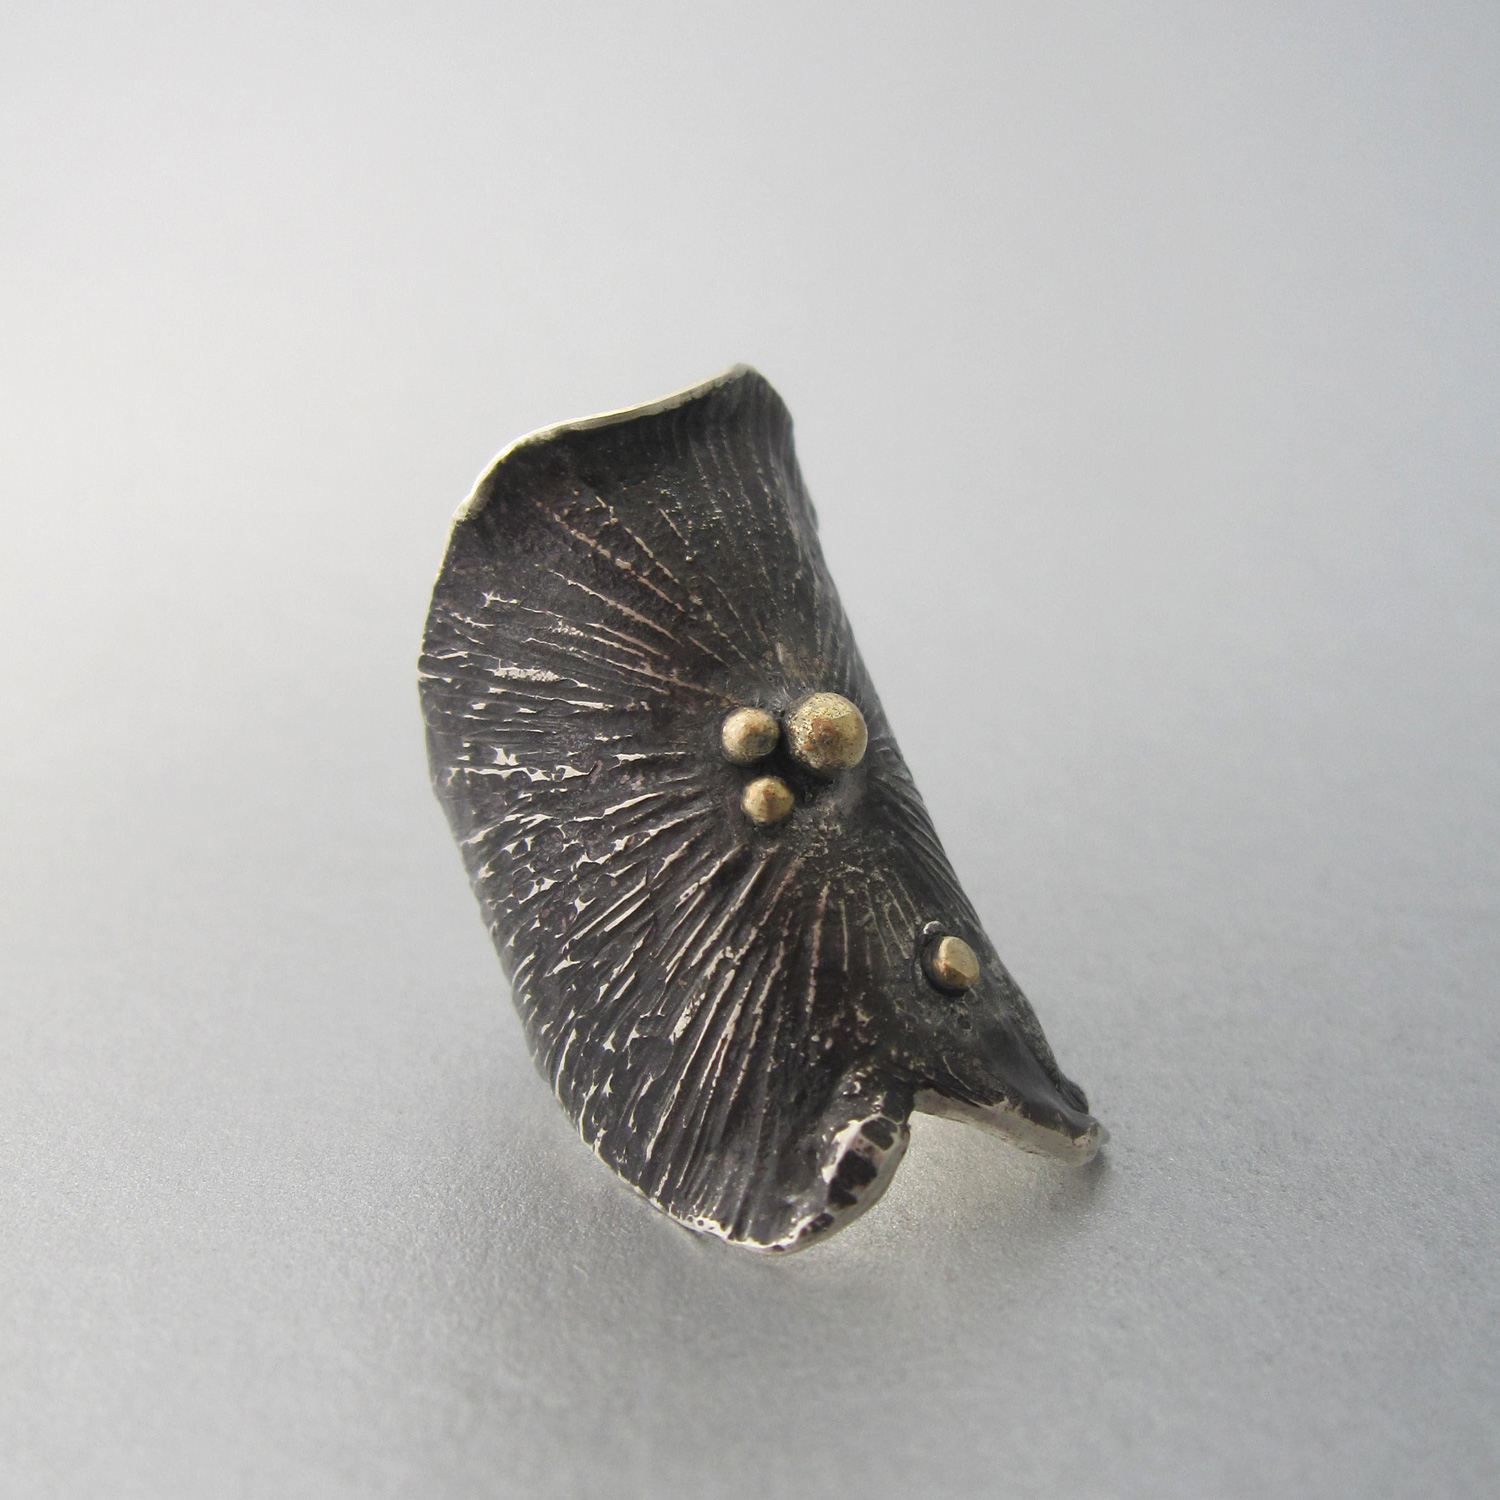 Relitto striato nero is an one of a kind ring handcrafted by the Italian jewelry designer